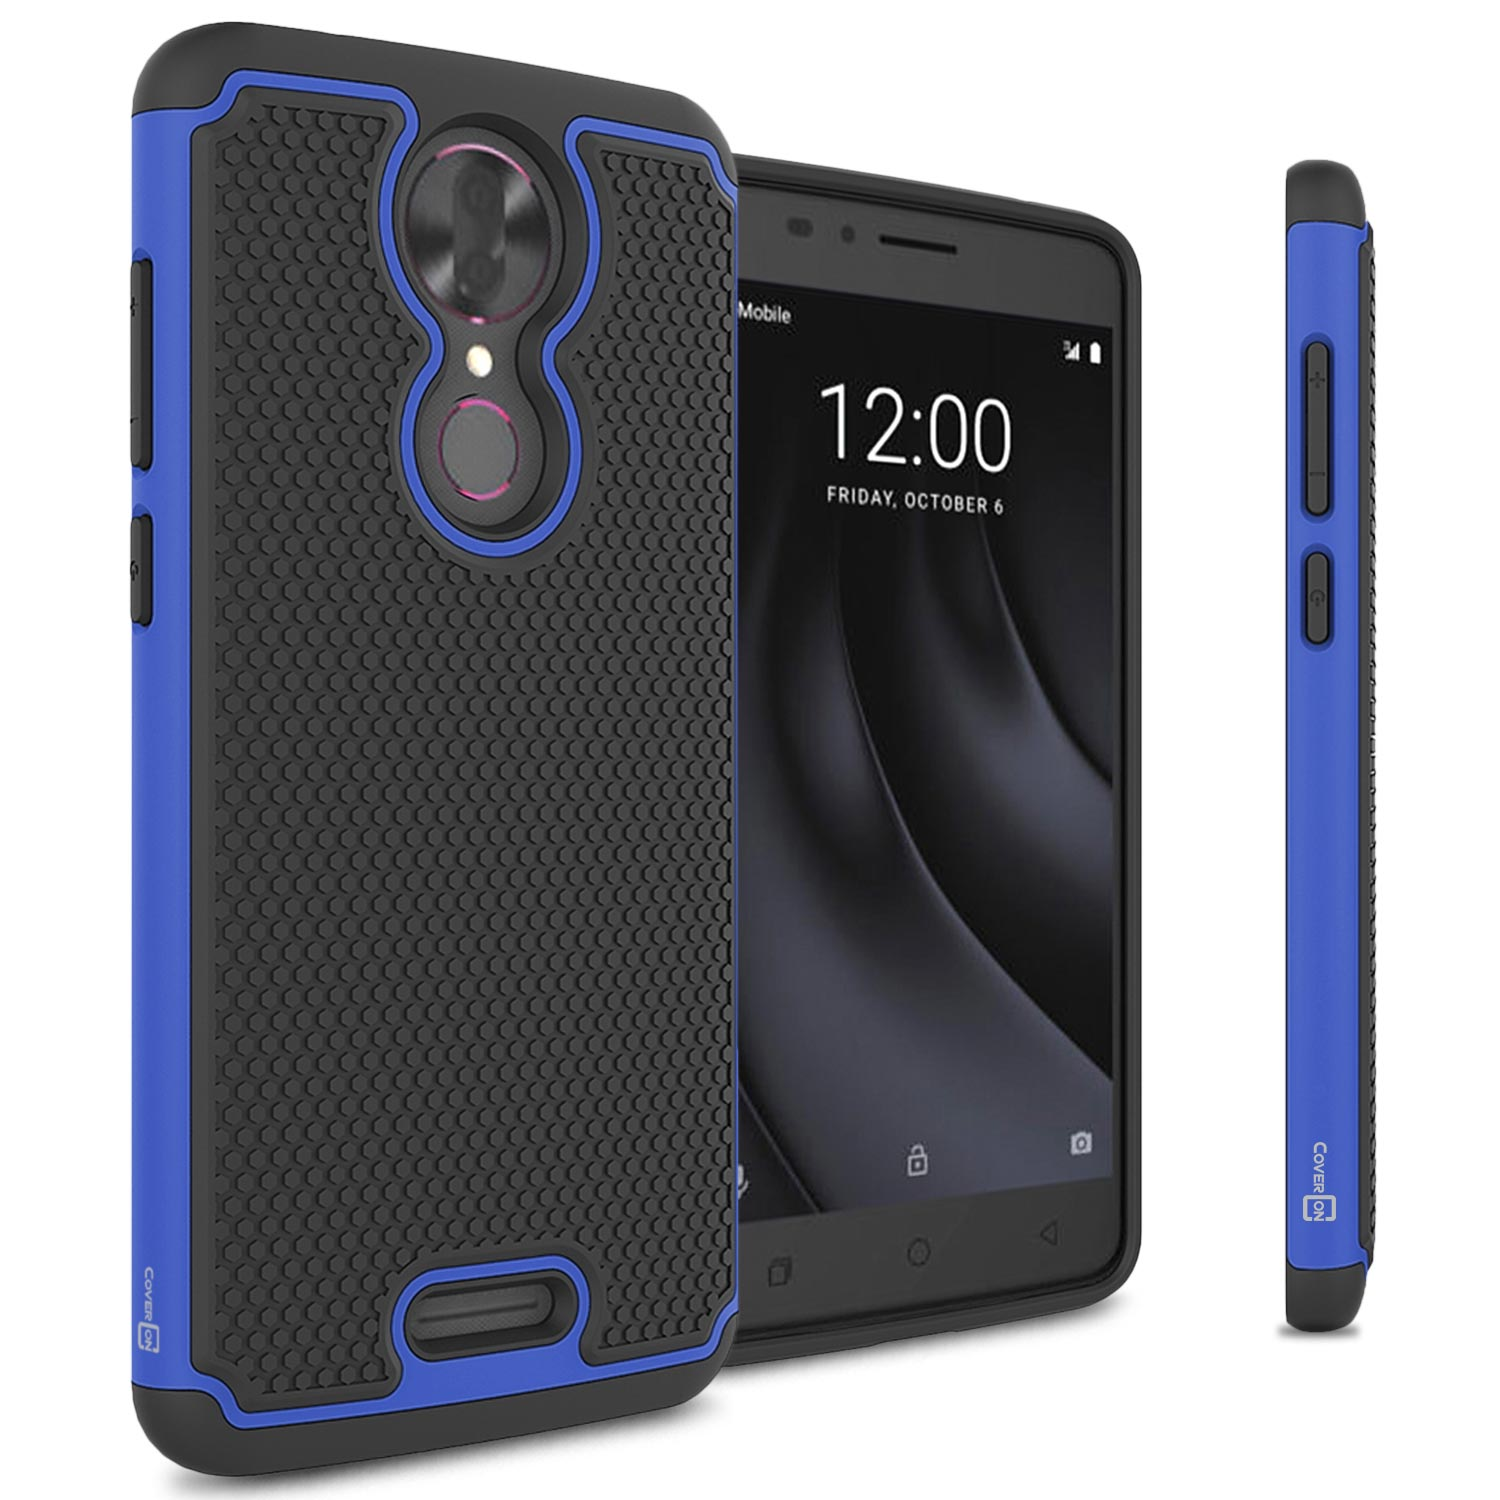 reputable site 98df4 3eed3 For Coolpad T-Mobile REVVL Plus Case Tough Protective Hard Hybrid ...